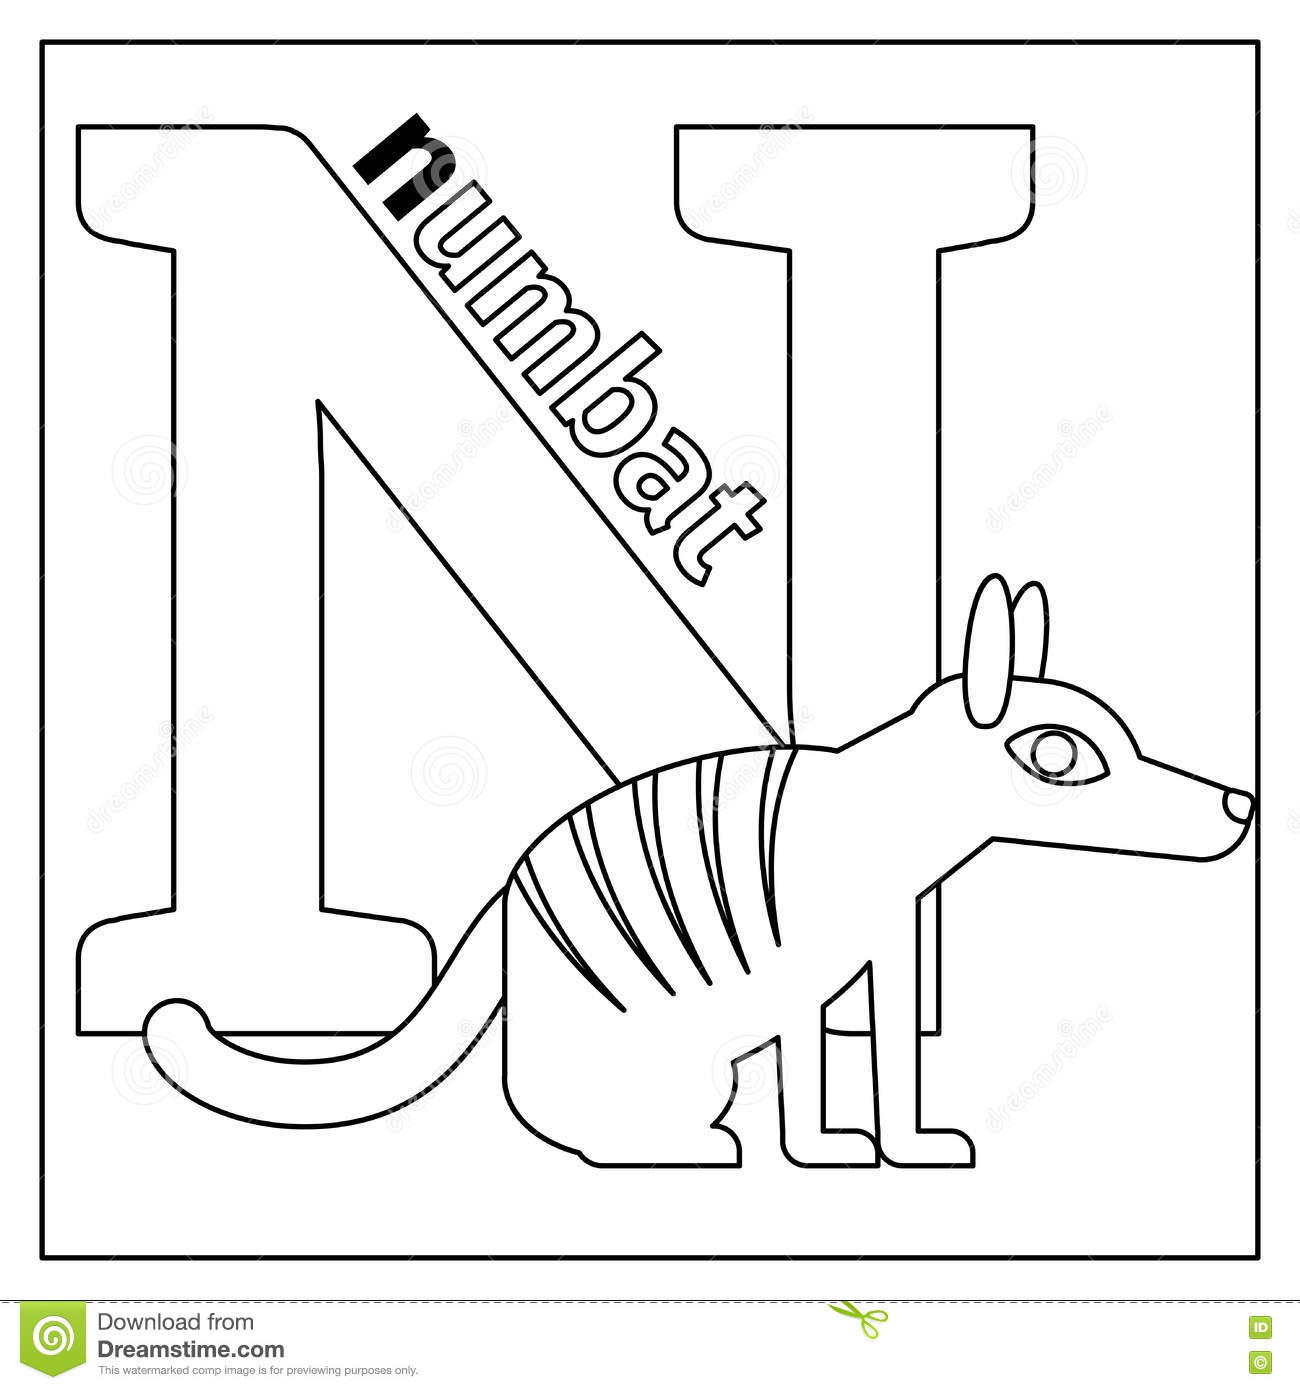 Letter n coloring pages preschool -  Letter N Coloring Page Download